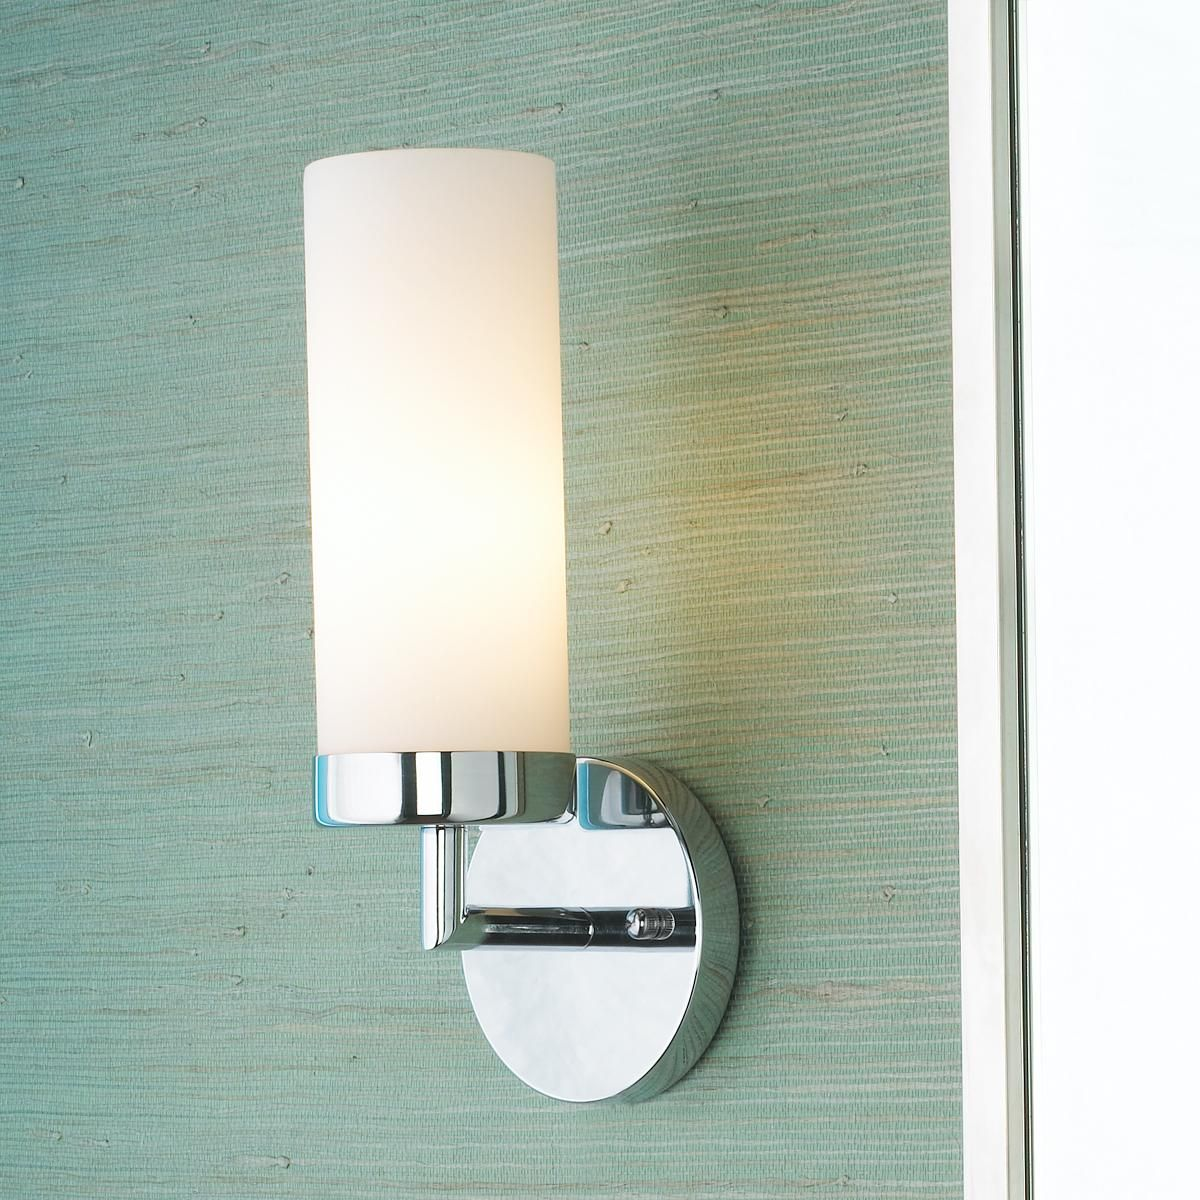 Bright Ceiling Light For Bedroom | Bath, Glass and Chrome